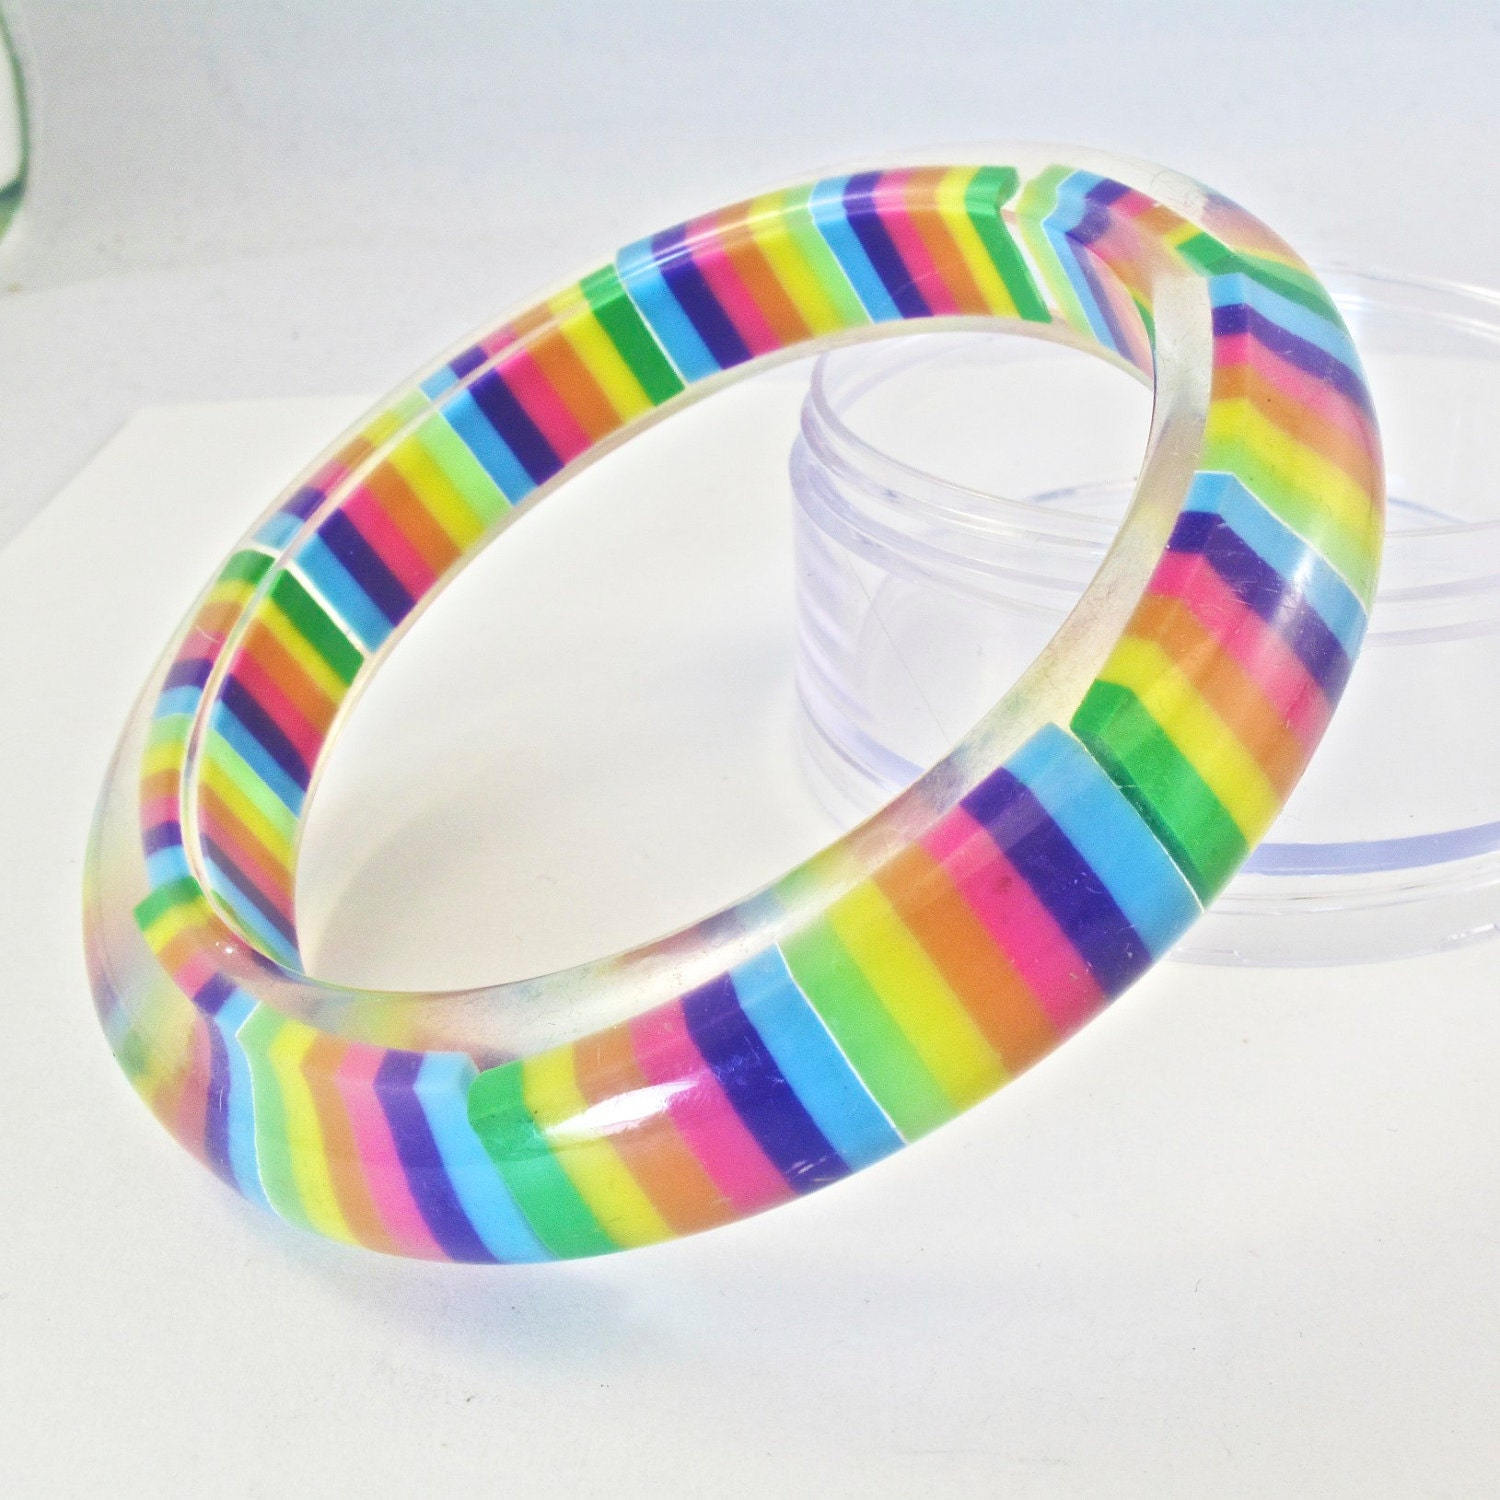 rainbow lucite bangle bracelet plastic vintage no 00478